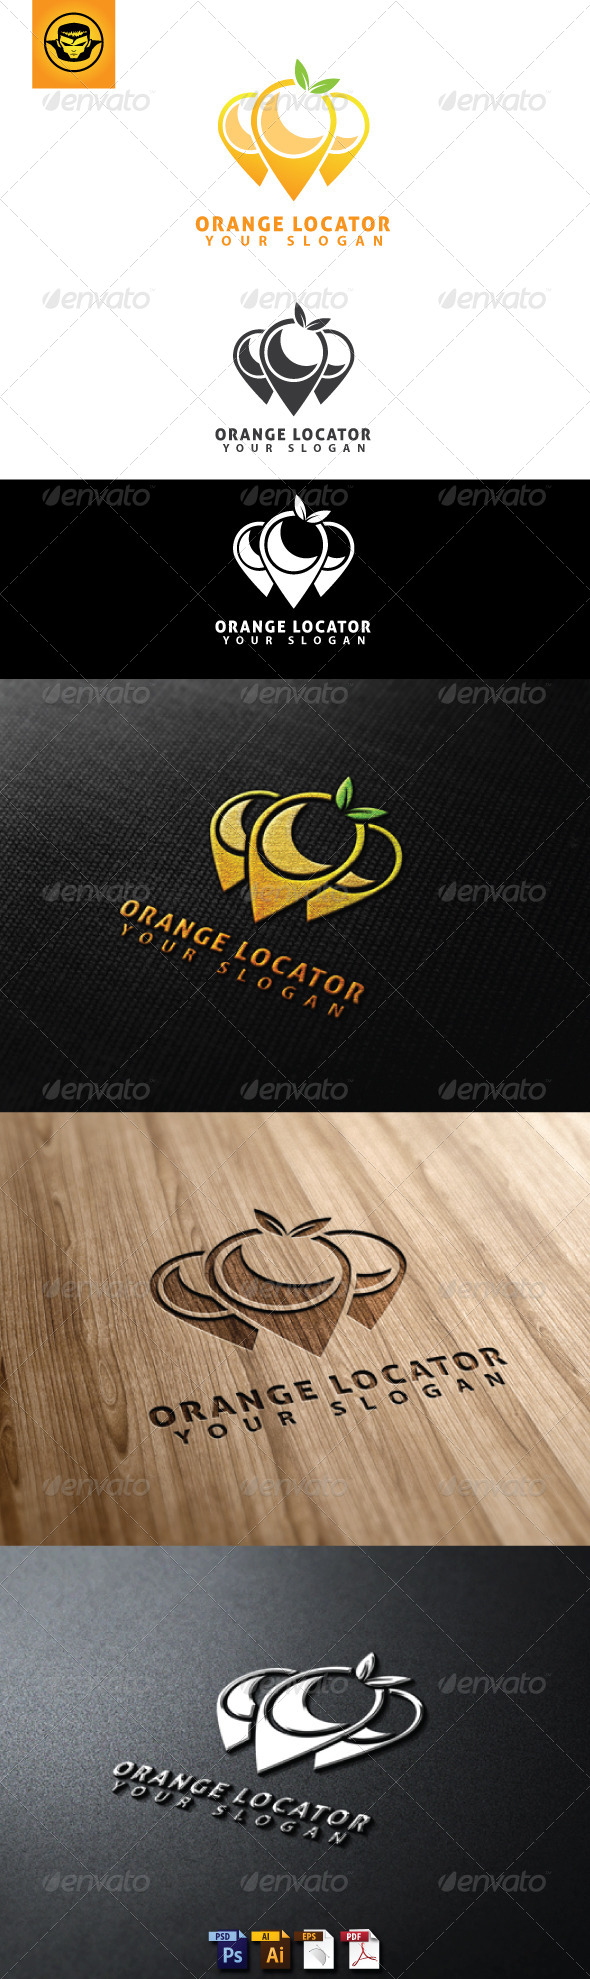 GraphicRiver Orange Locator Logo Template 4765968